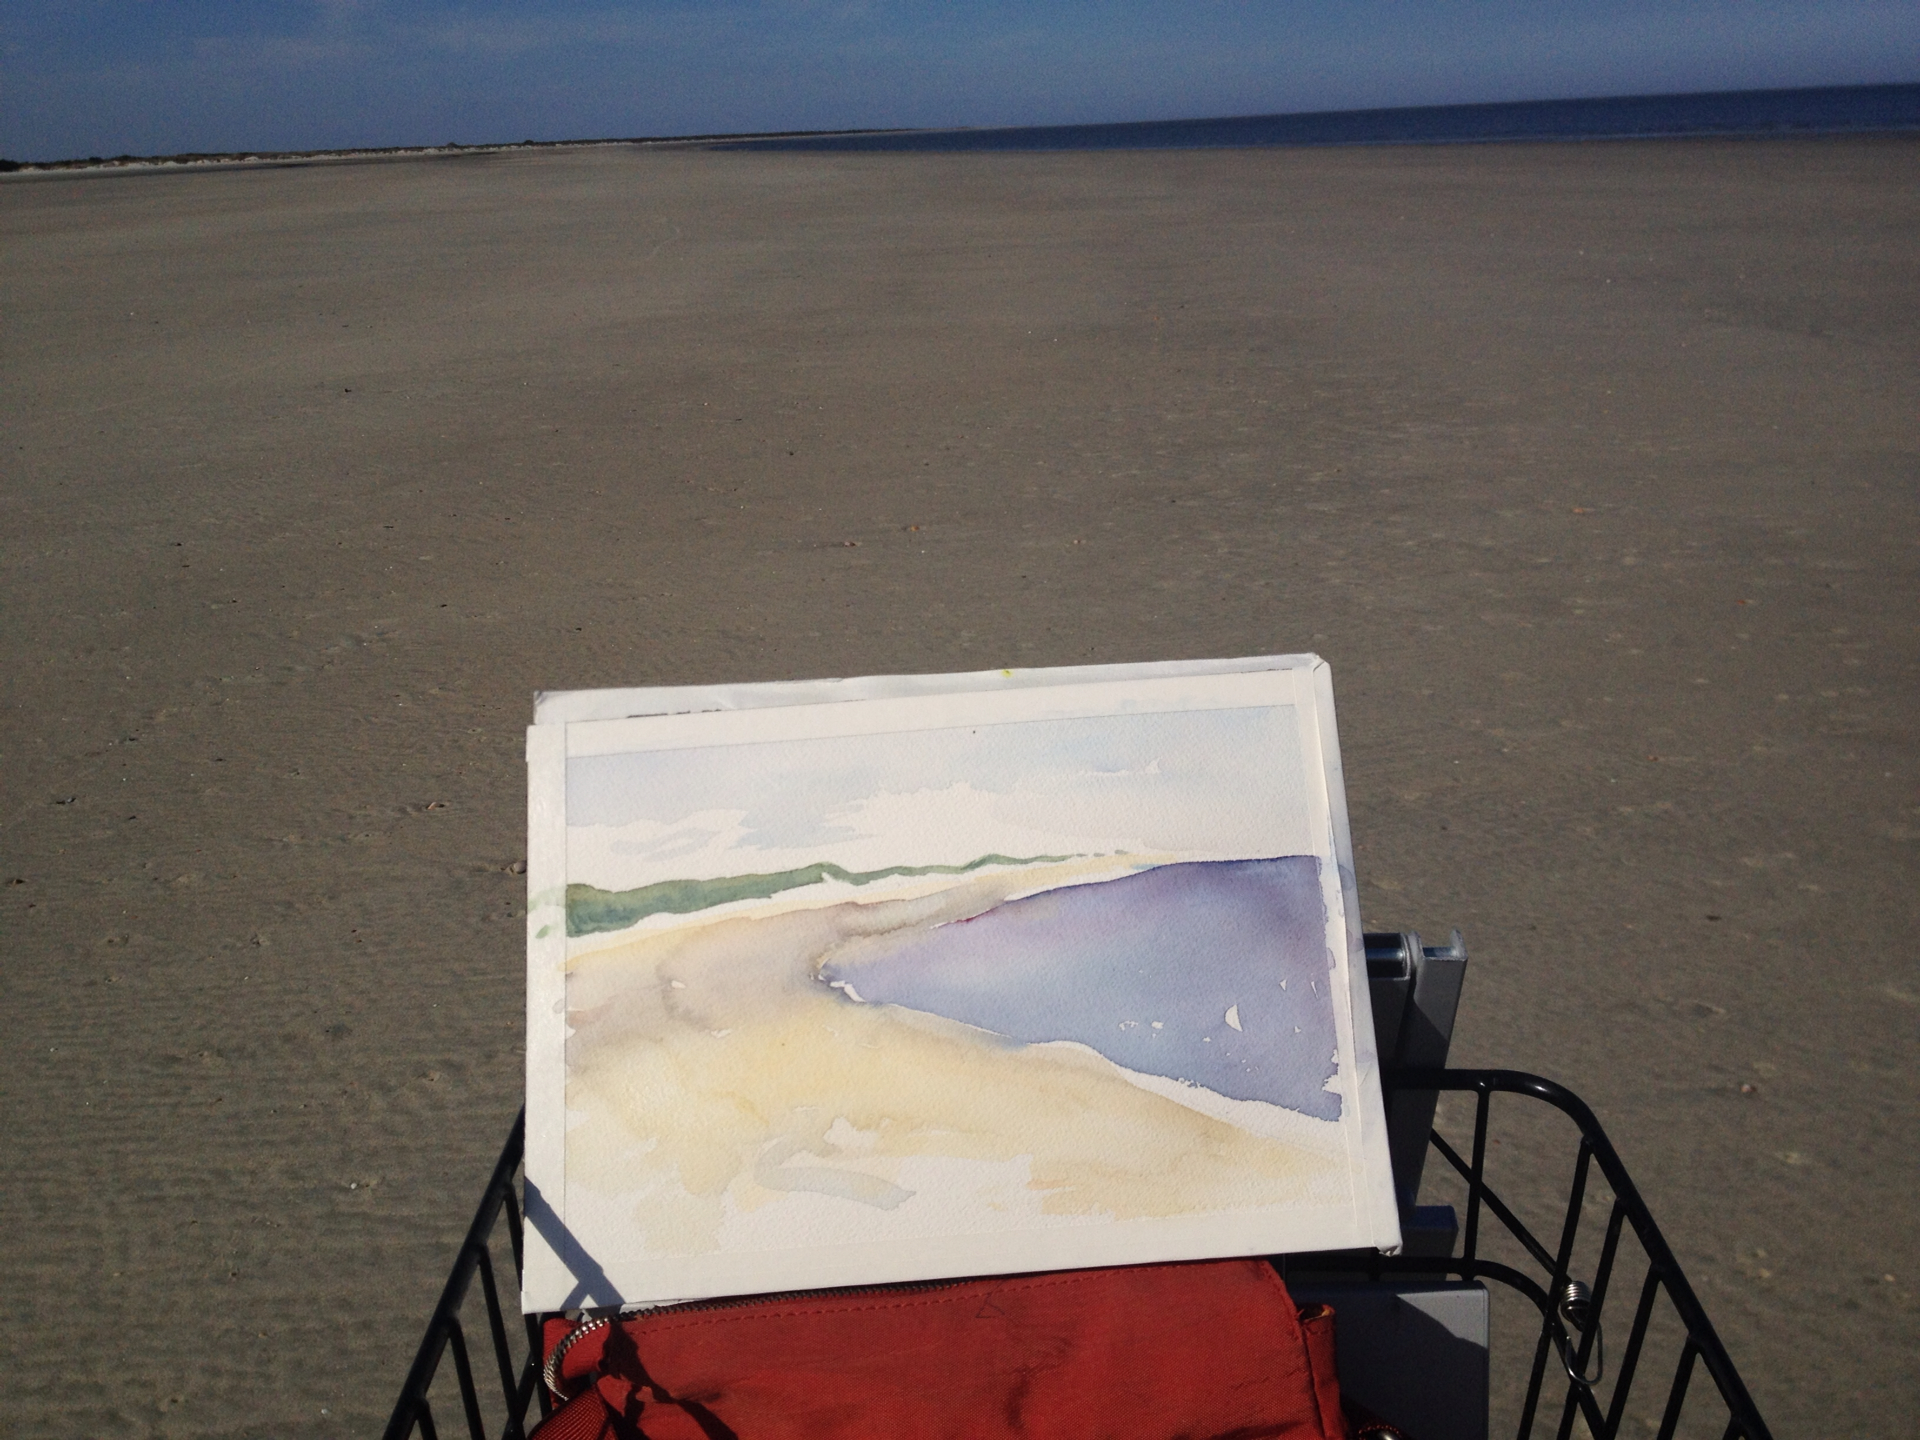 Using the front bike basket as an easel. Main Beach, Little Saint Simons Island, Georgia.